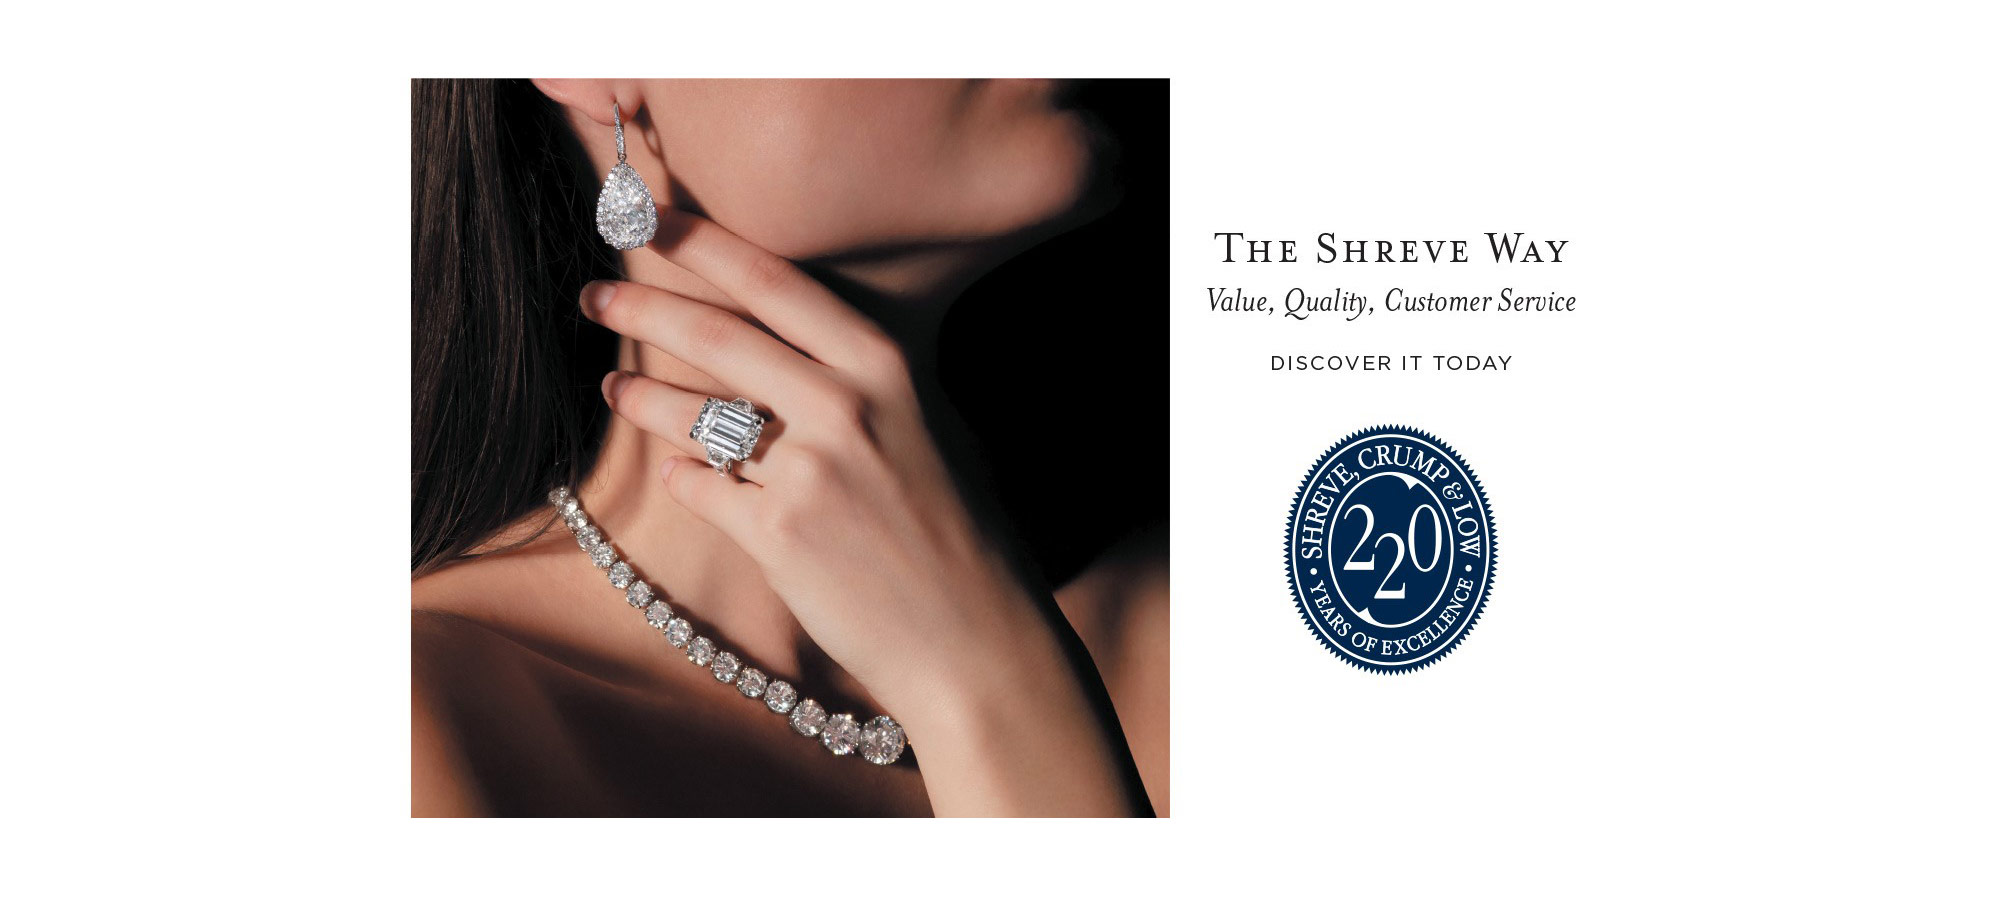 Crump Auto Sales >> Shreve, Crump & Low | Fine Jewelry, Watches & Gifts Since 1796 | Boston, Chestnut Hill & Greenwich